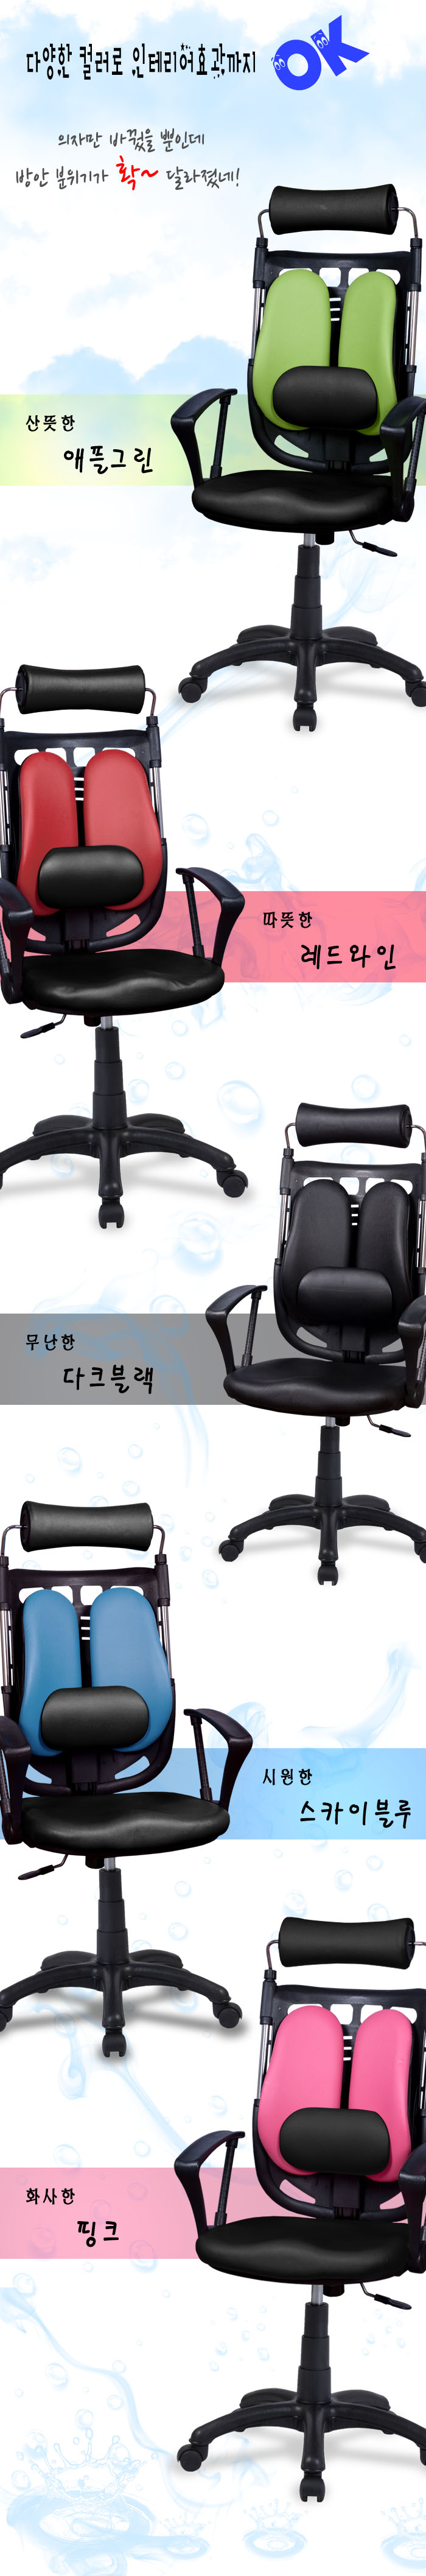 Http Www Chairfocus Co Kr